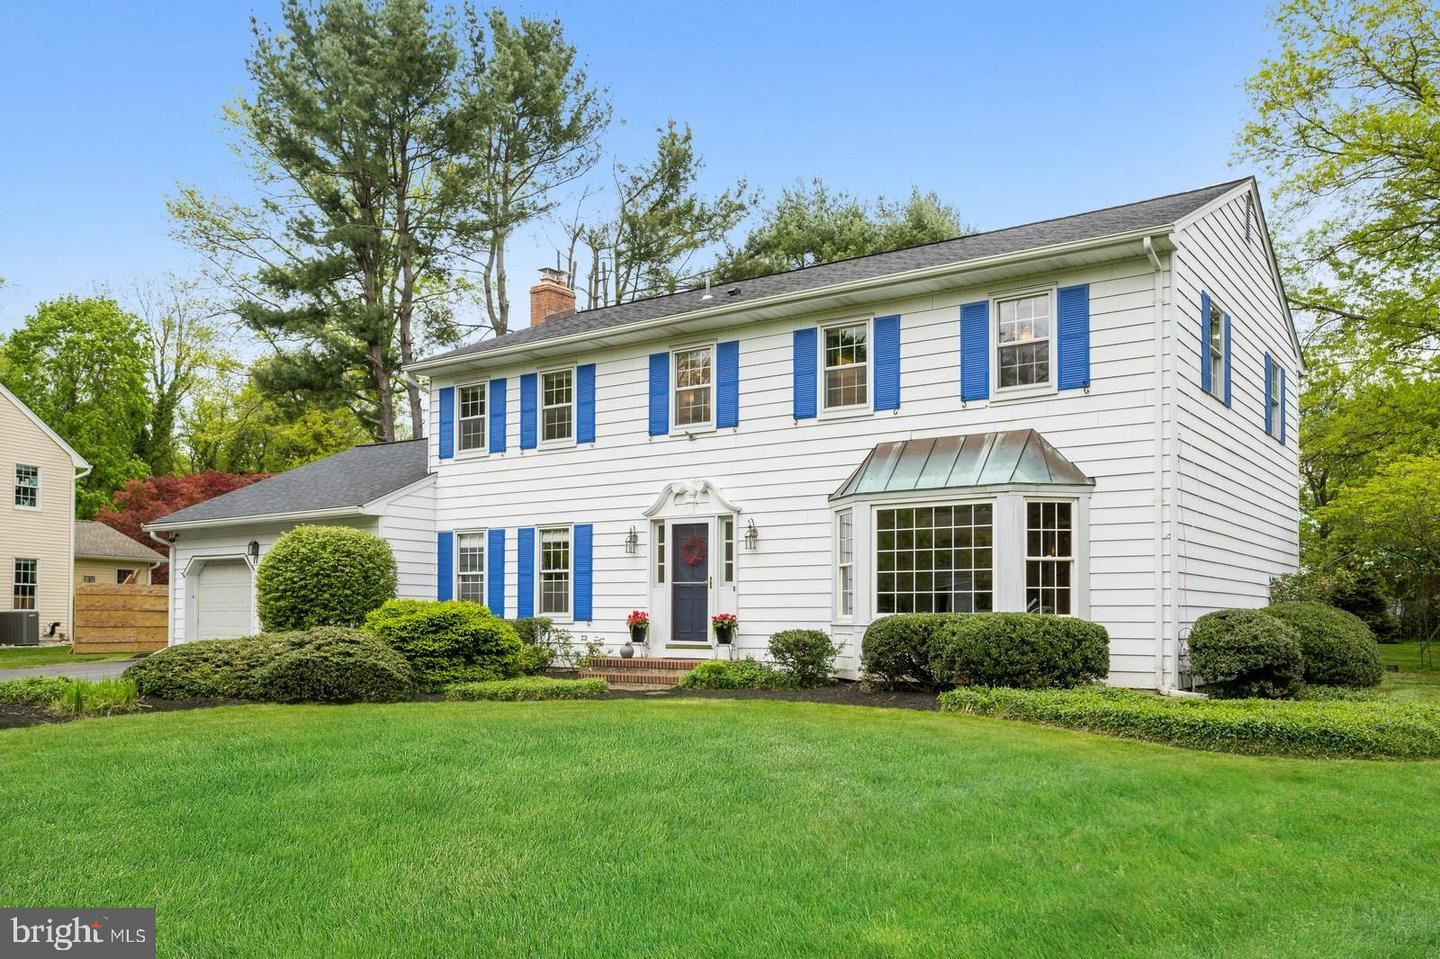 11 HEREFORD DR, Princeton Junction, NJ 08550 - #: NJME295418